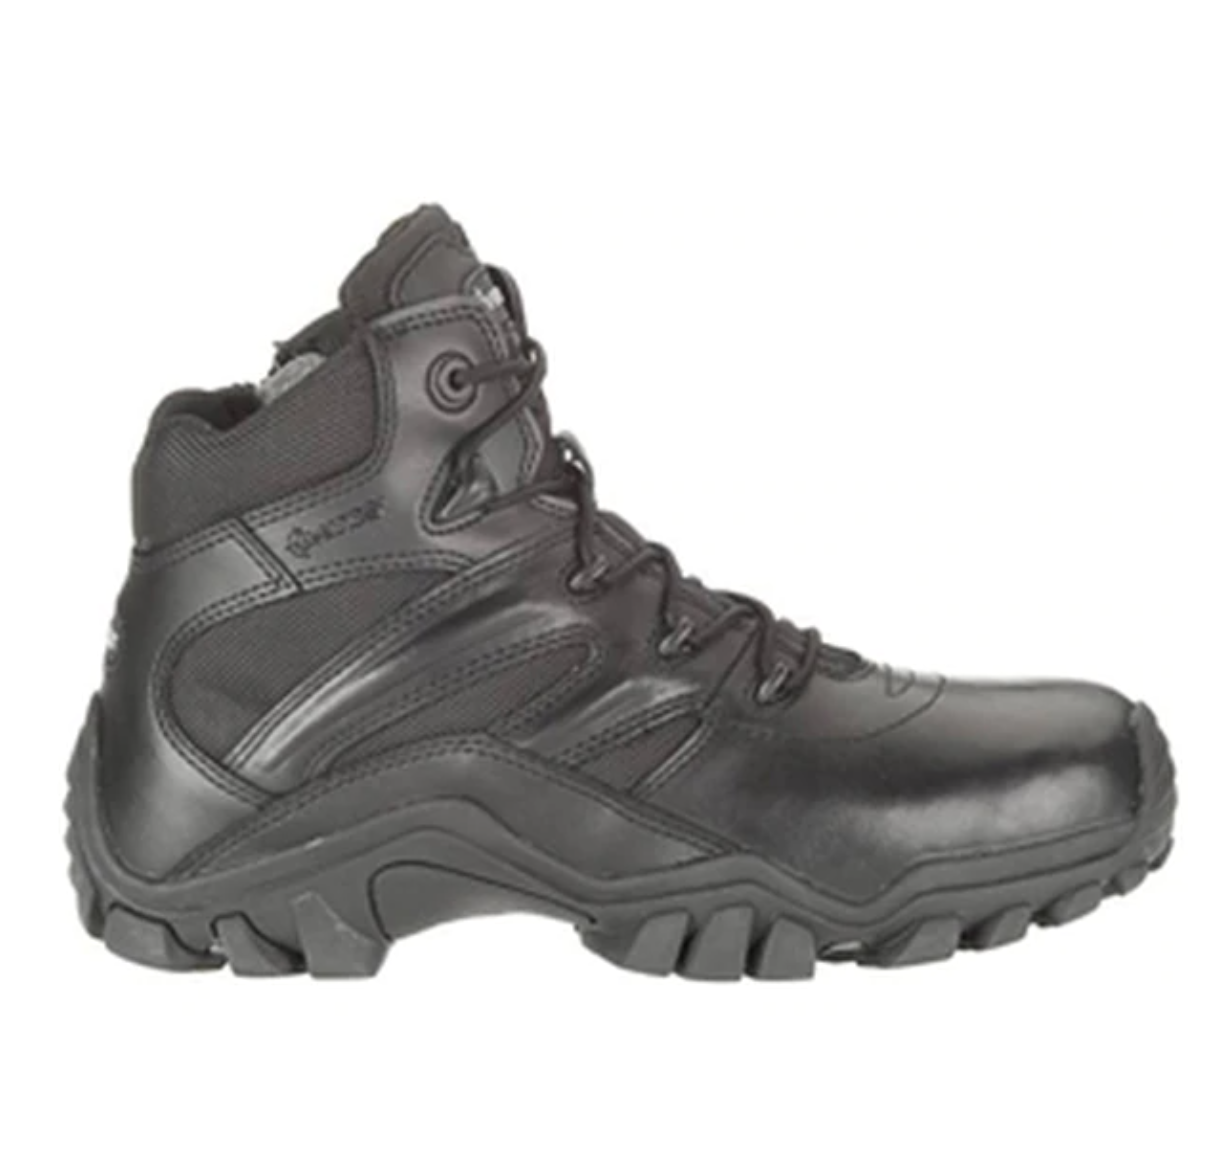 BATES DELTA-6 SIDE ZIP TACTICAL BOOTS